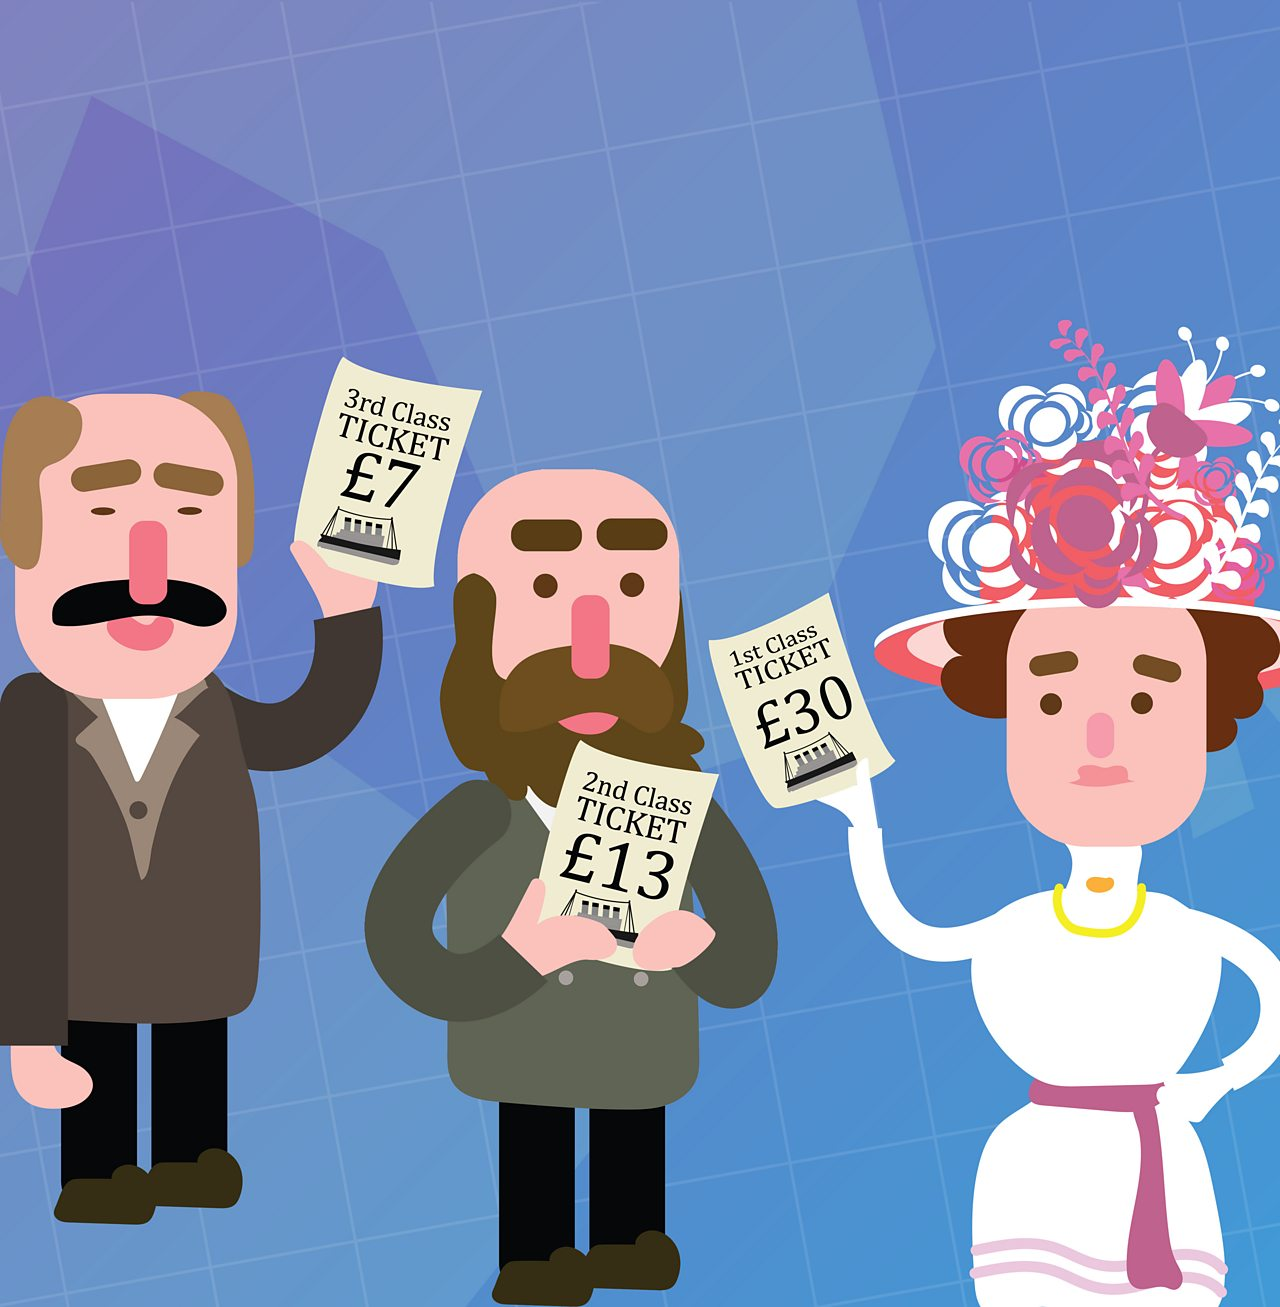 Animated image of passengers holding up tickets to board the Titanic